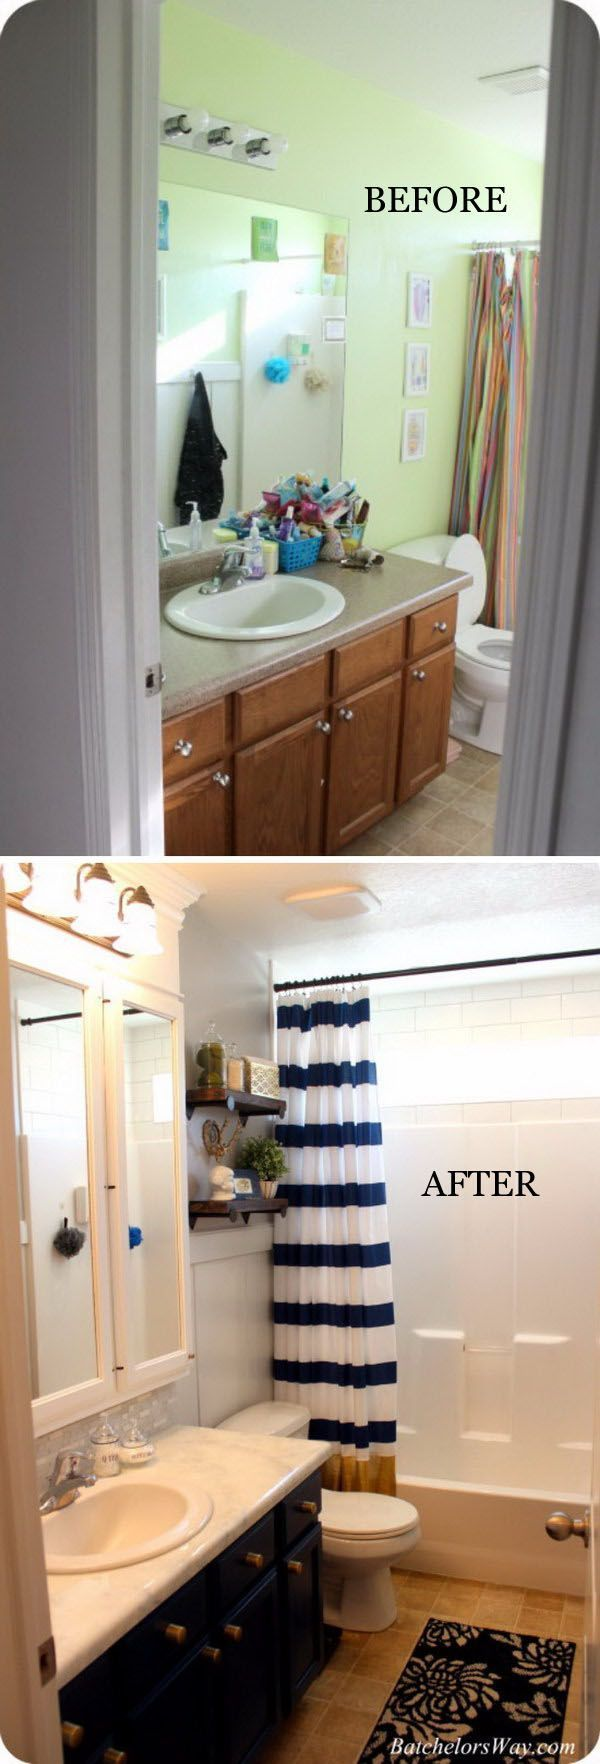 Best 25 budget bathroom makeovers ideas on pinterest tiny bathroom makeovers budget bathroom How to remodel a small bathroom on a budget